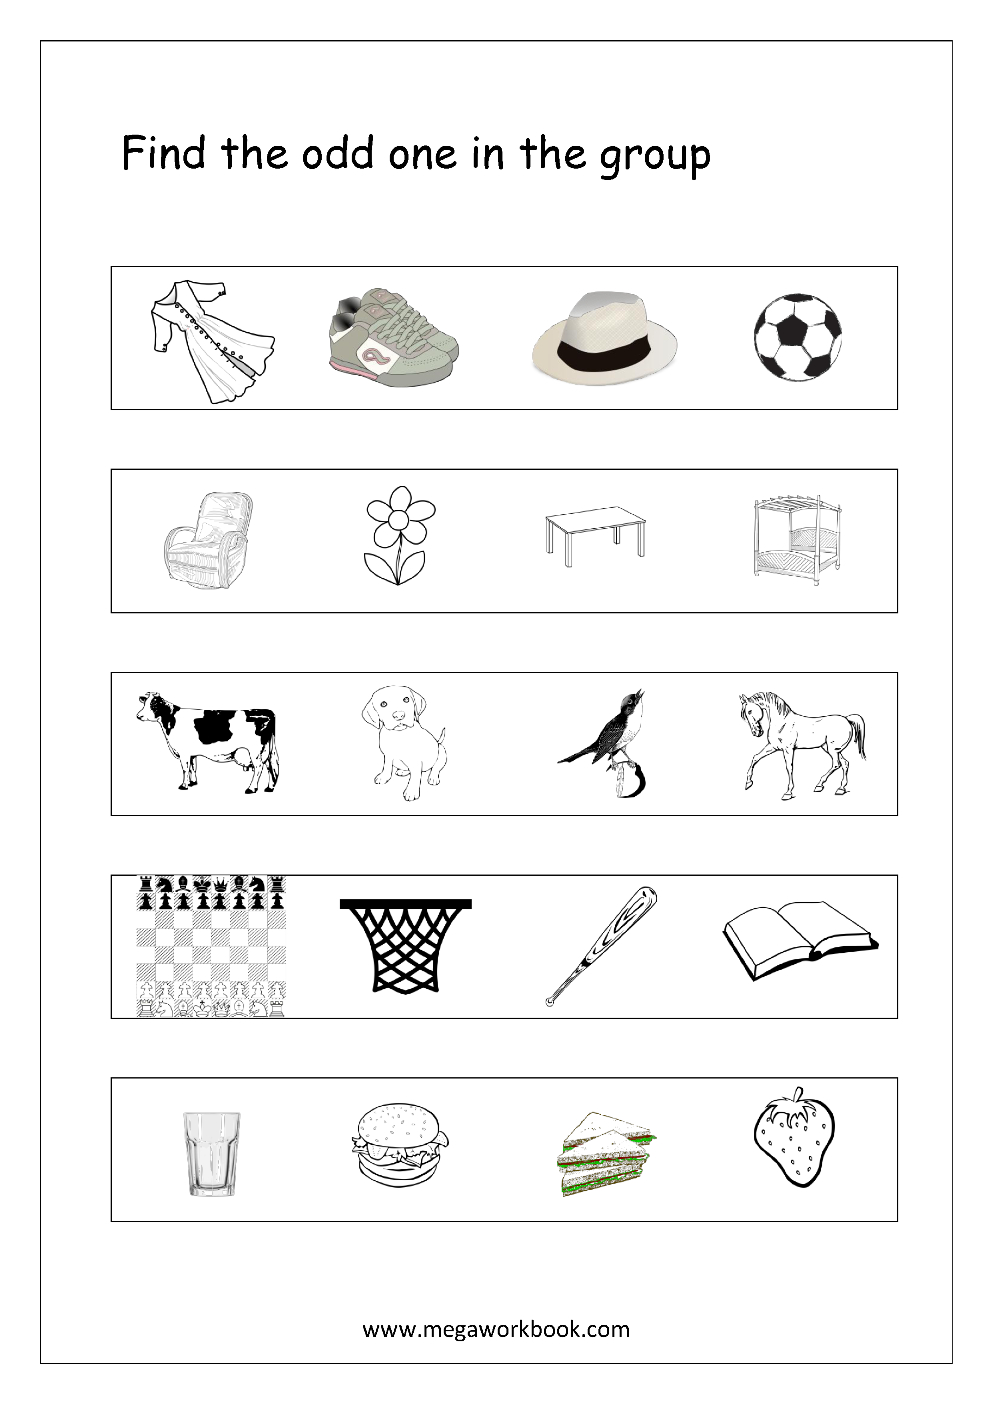 Free General Aptitude Worksheets - Odd One Out - Megaworkbook | Free Printable Worksheets For Kids Science